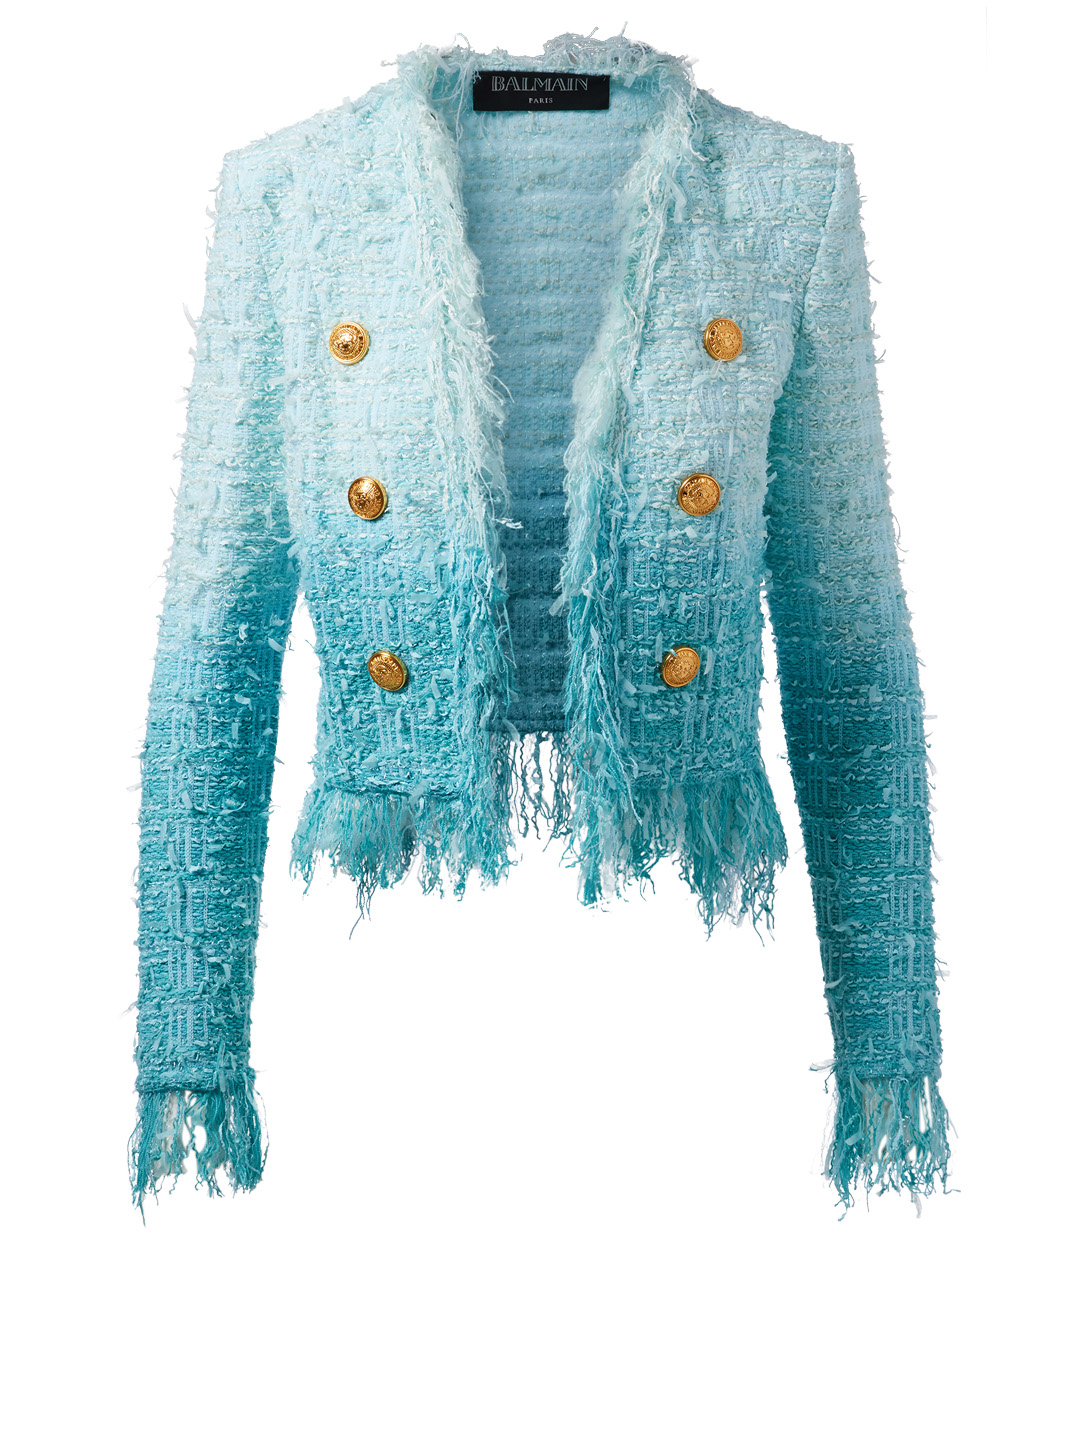 BALMAIN Tie-Dye Tweed Jacket Women's Blue